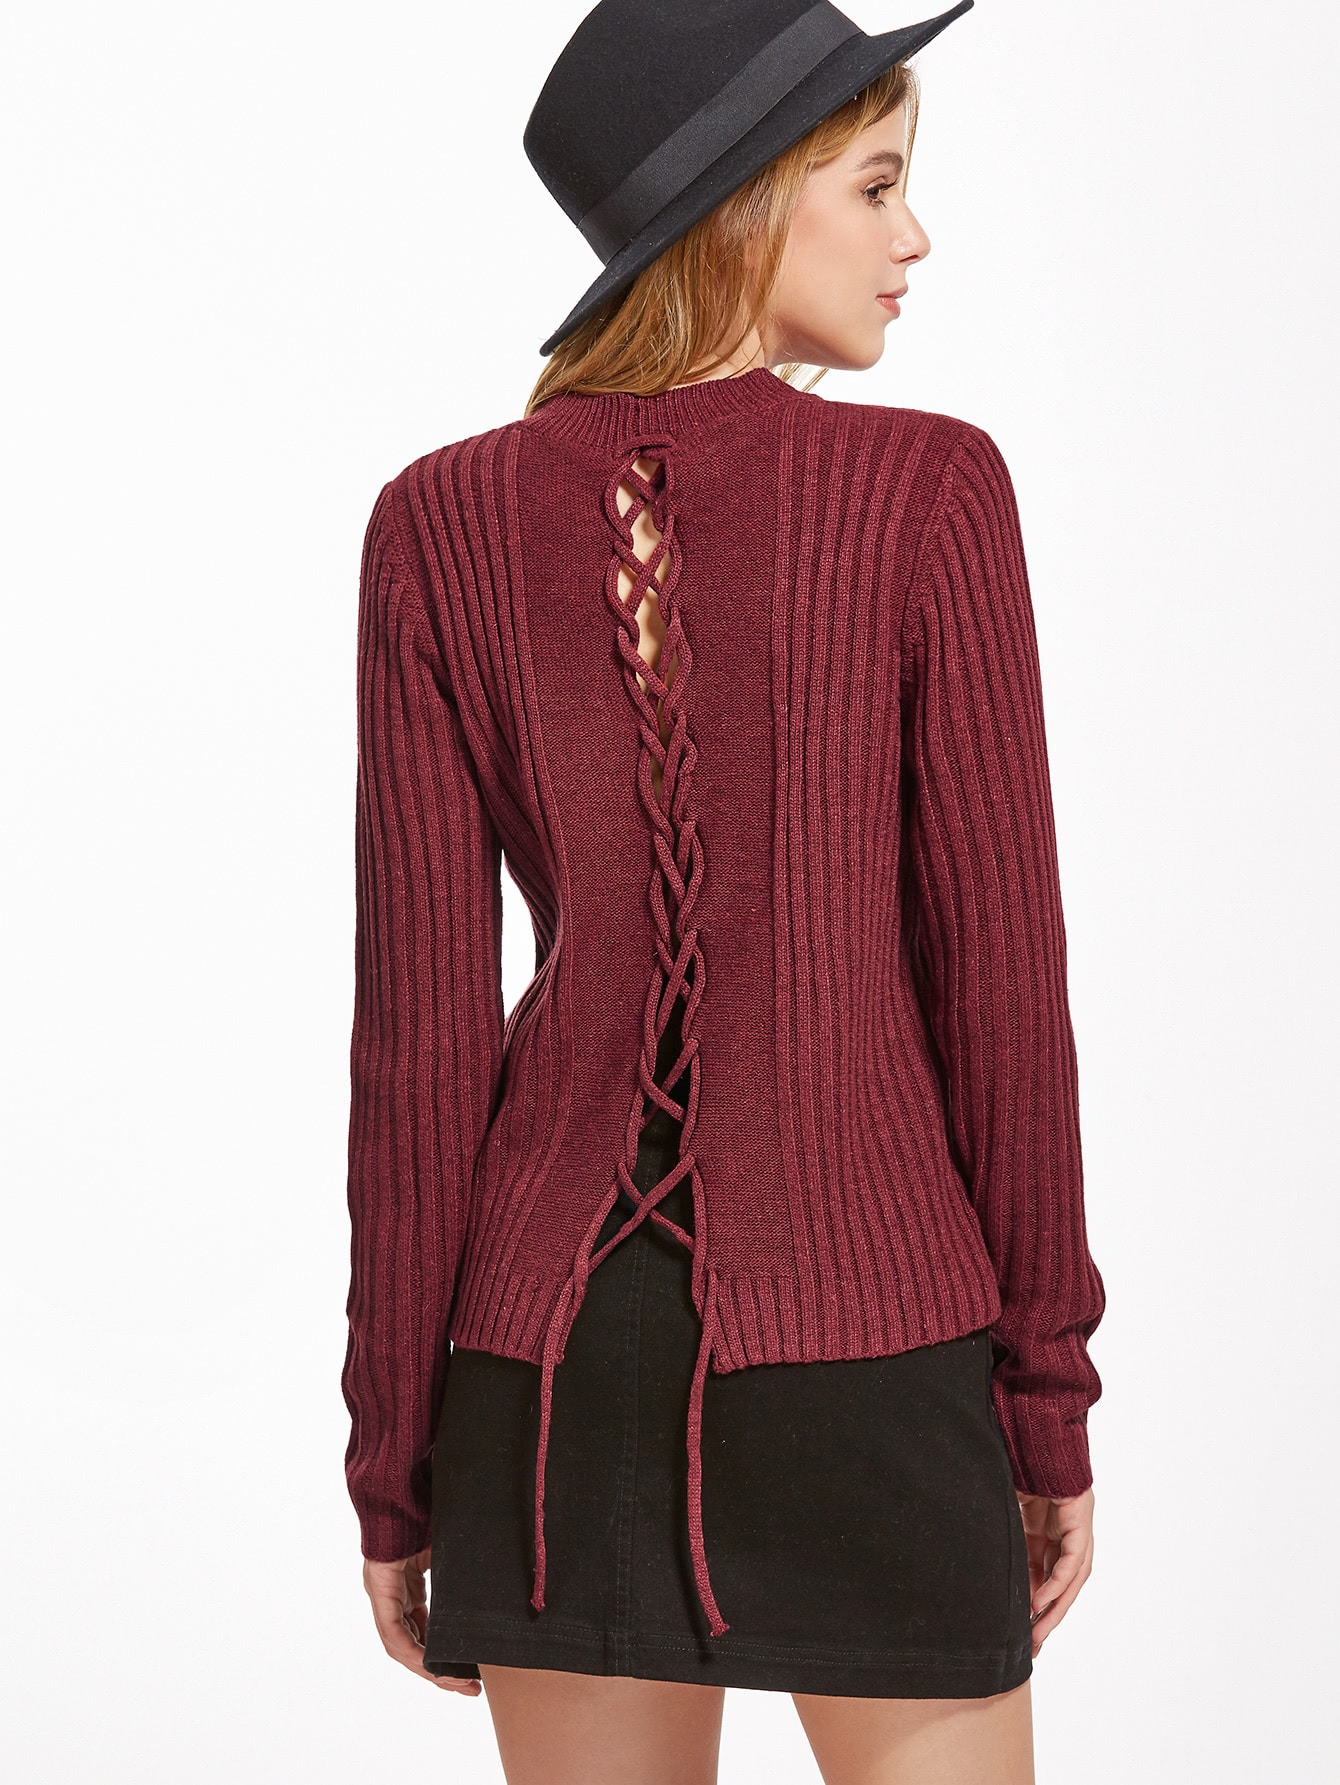 Burgundy Ribbed Lace Up Back Sweater sweater160915466